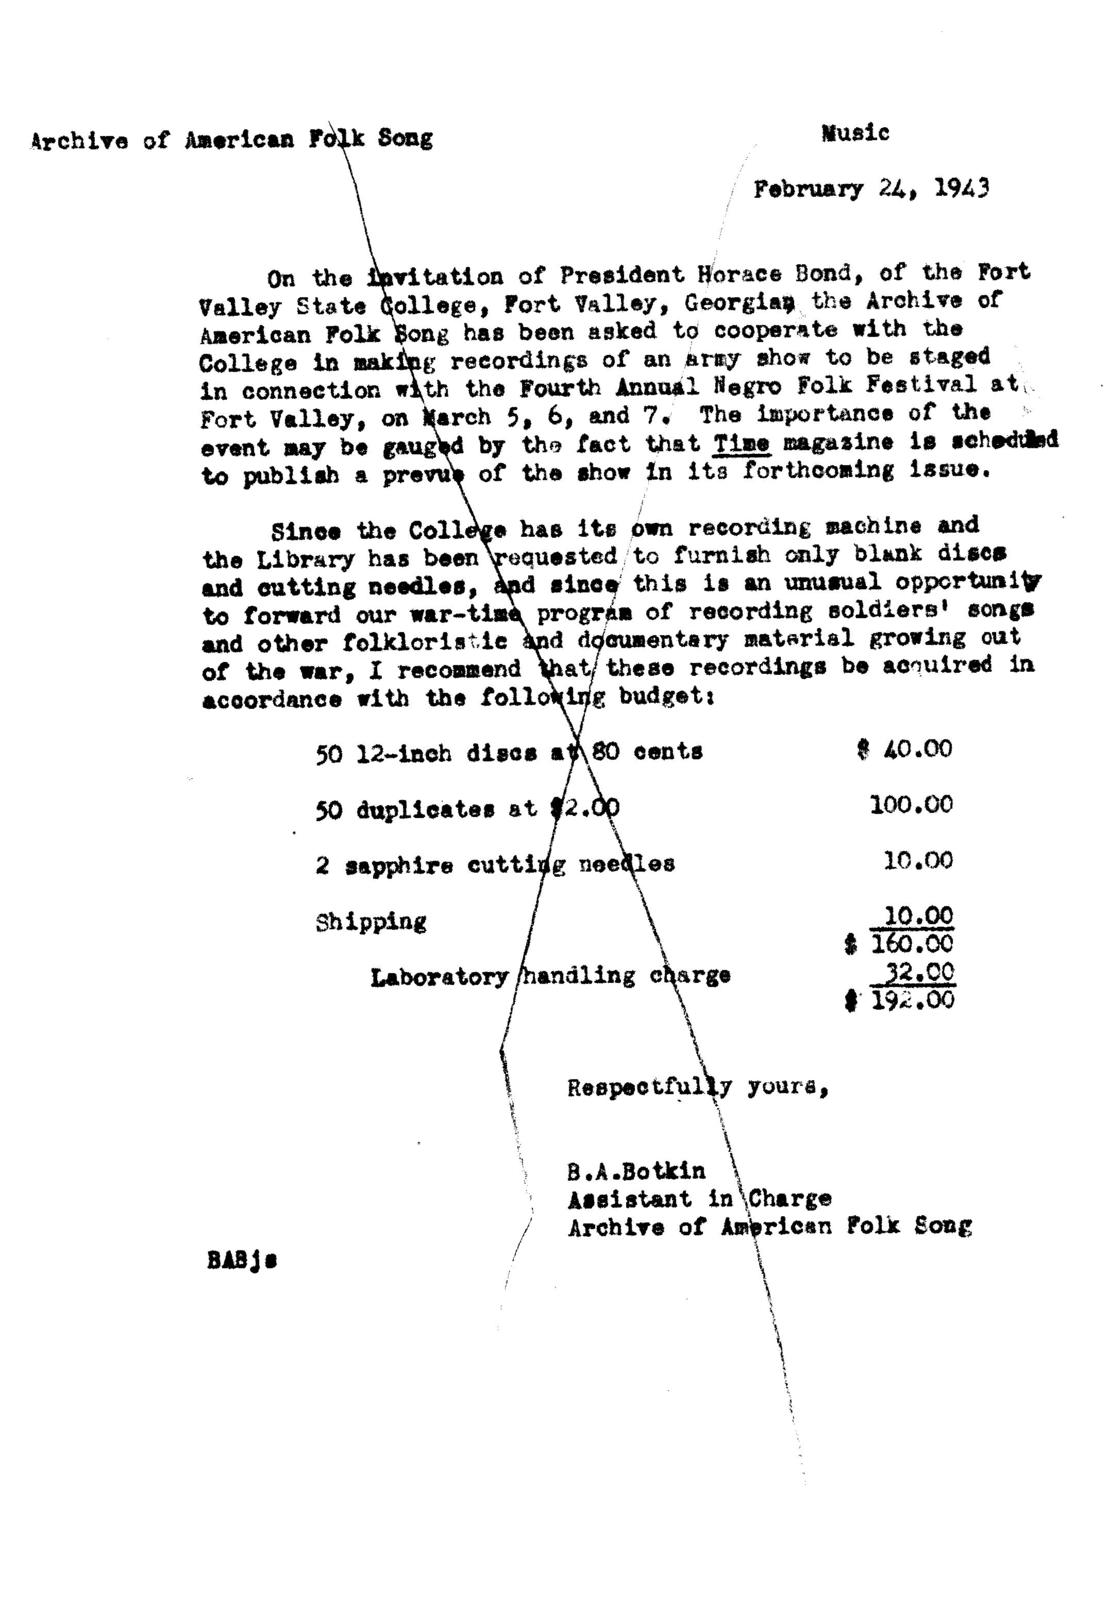 February 24, 1943, draft of memo by B.A. Botkin